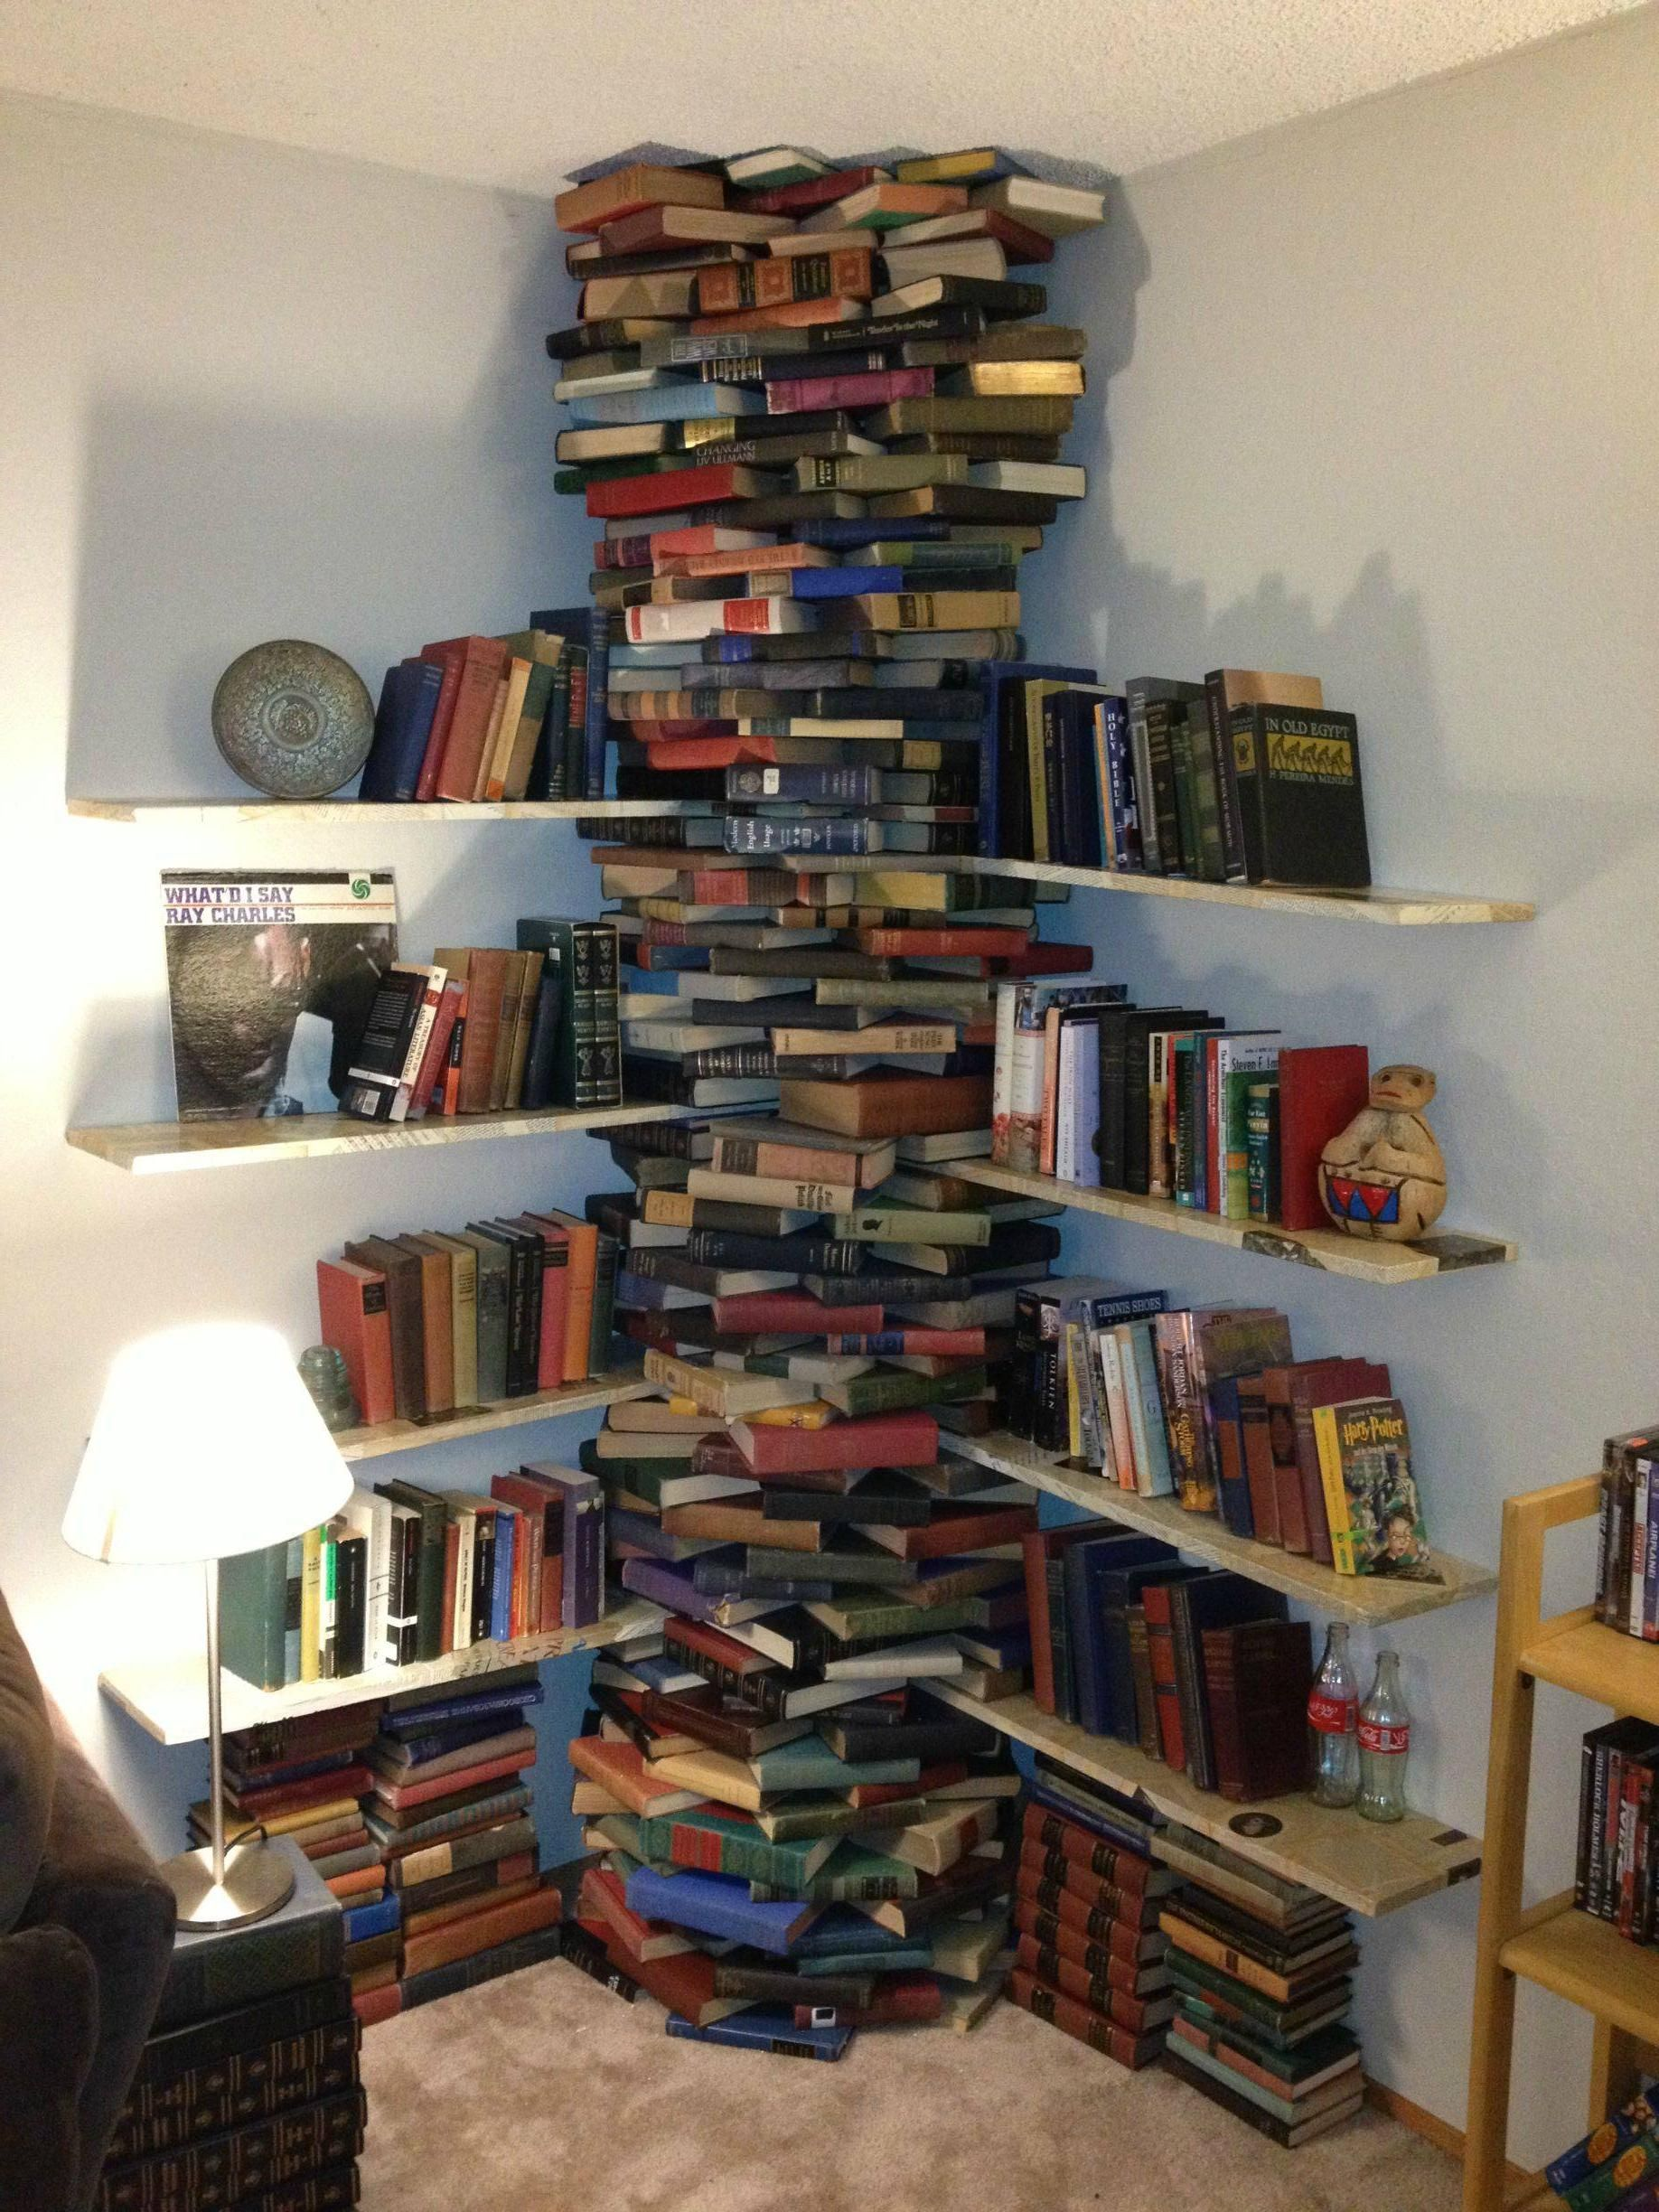 Books Shelves bookshelf 'built' with books. another reddit find. | book shelves